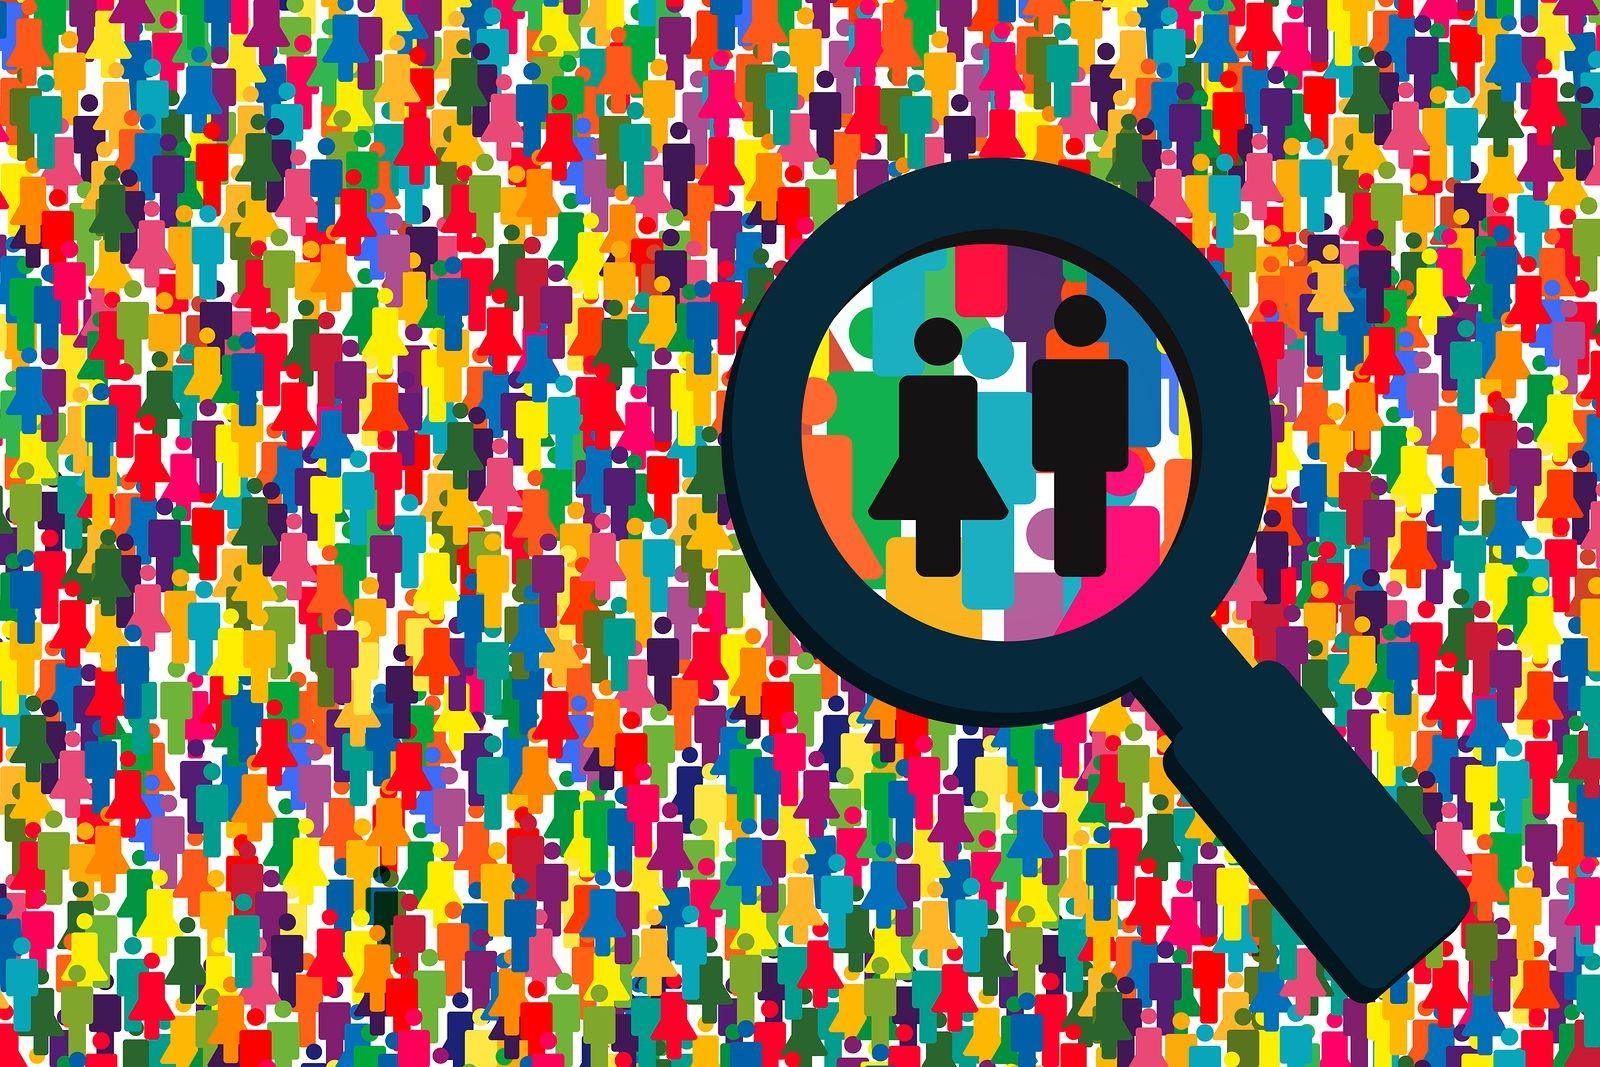 Personalization is Where the Digital Marketing Landscape is Headed